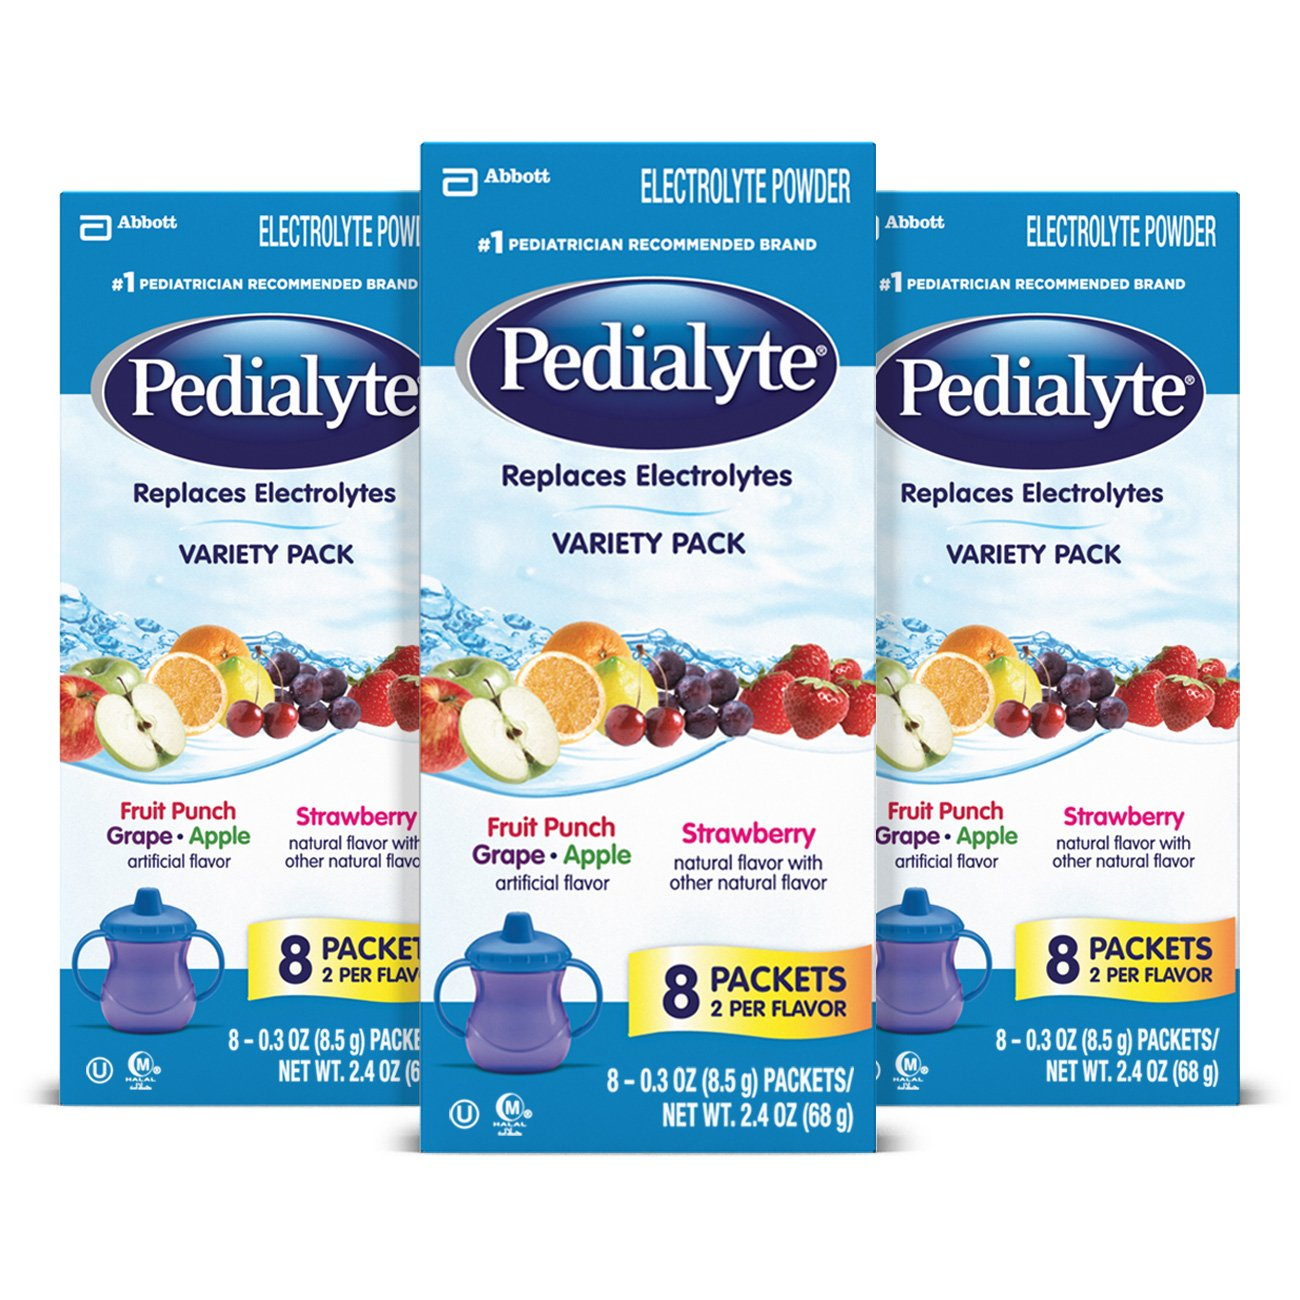 Pedialyte For Babies – Is It Safe For Babies With Diarrhea? 2